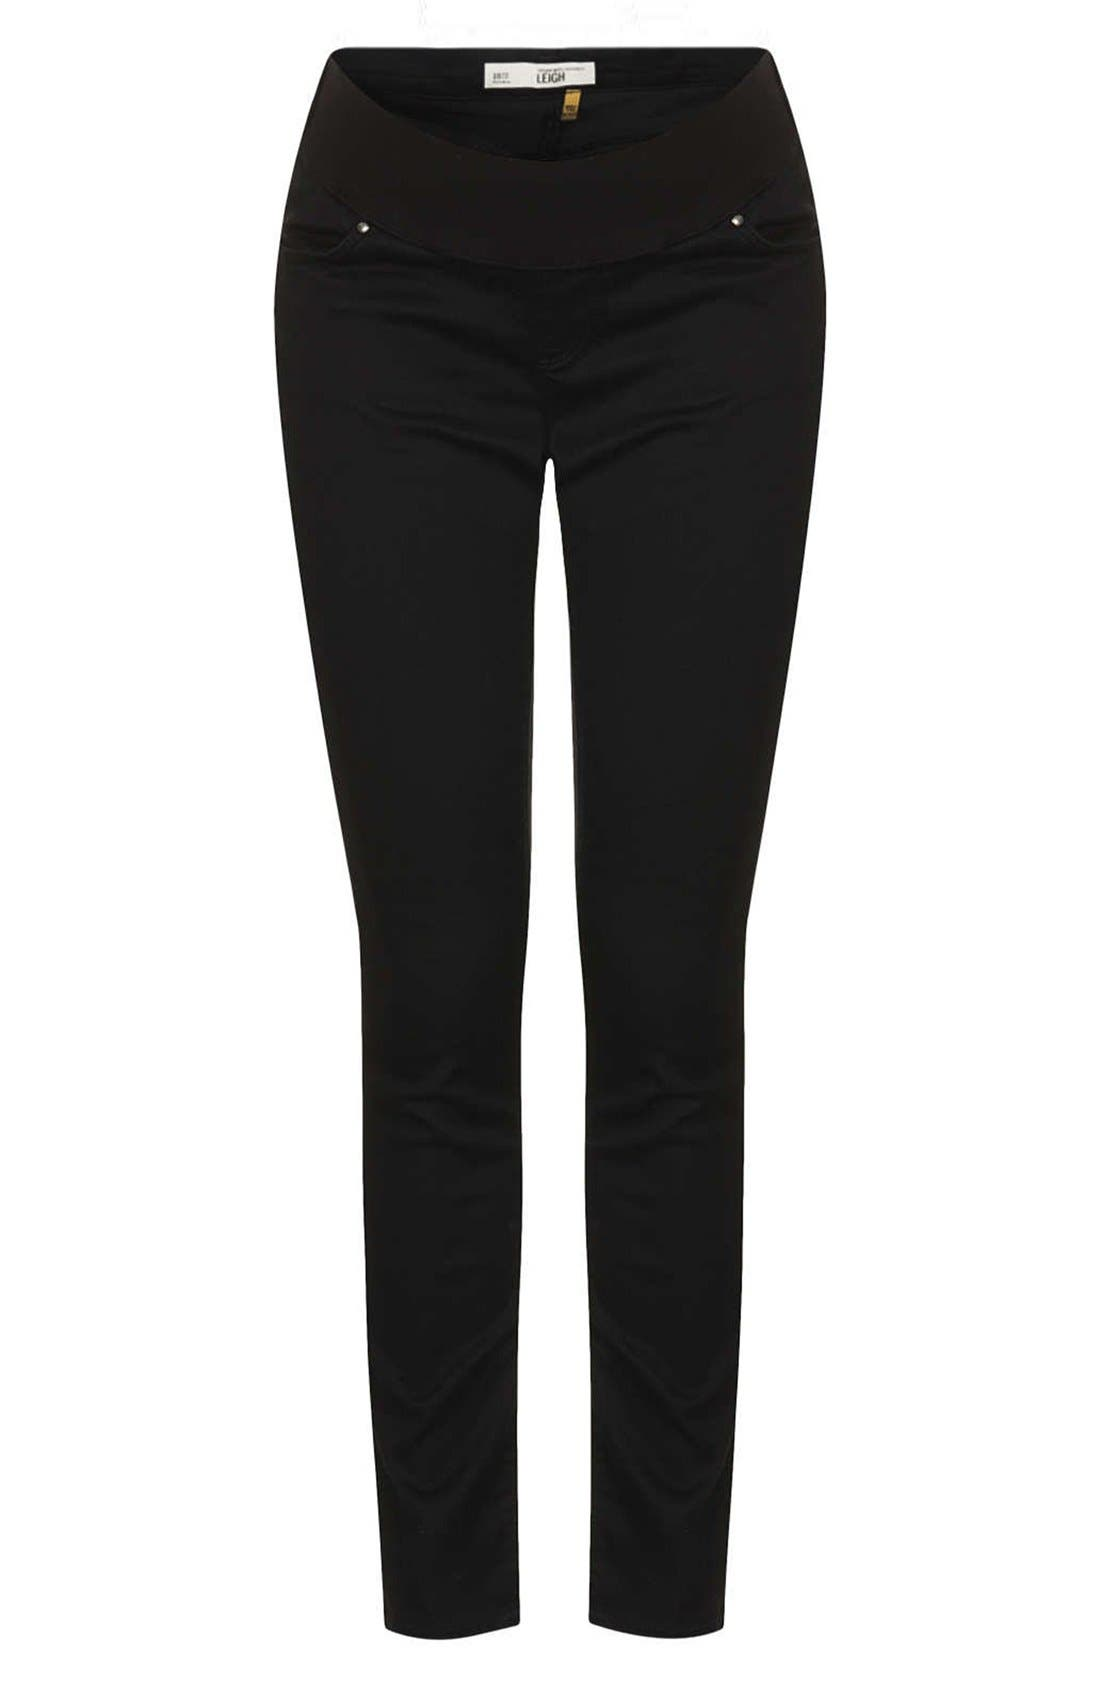 Alternate Image 1 Selected - Topshop 'Leigh' Maternity Jeans